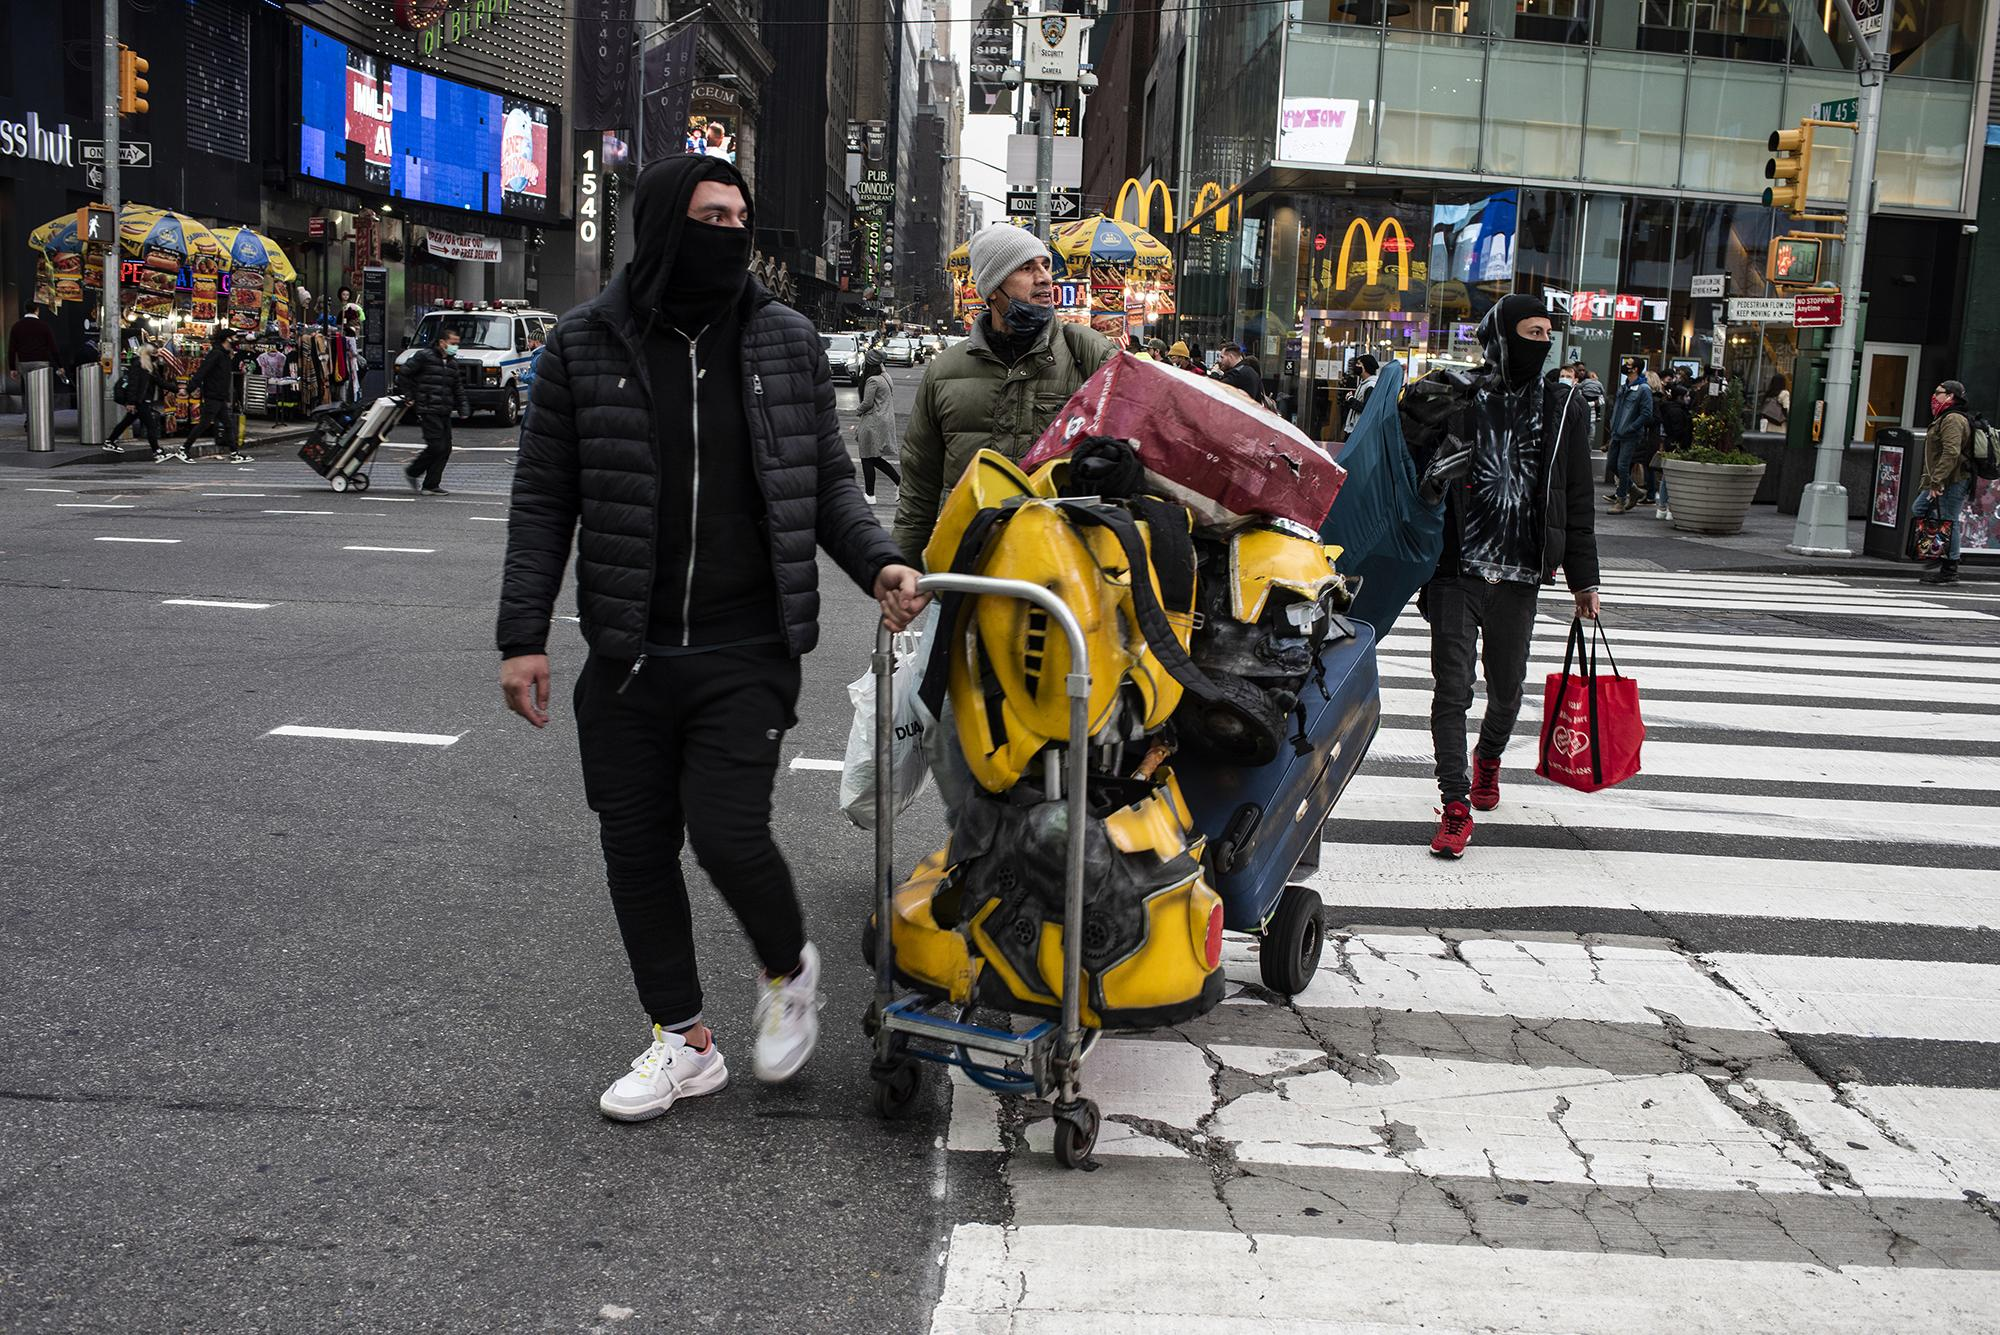 A group of street performers get ready for work in Times Square. December 13, 2020